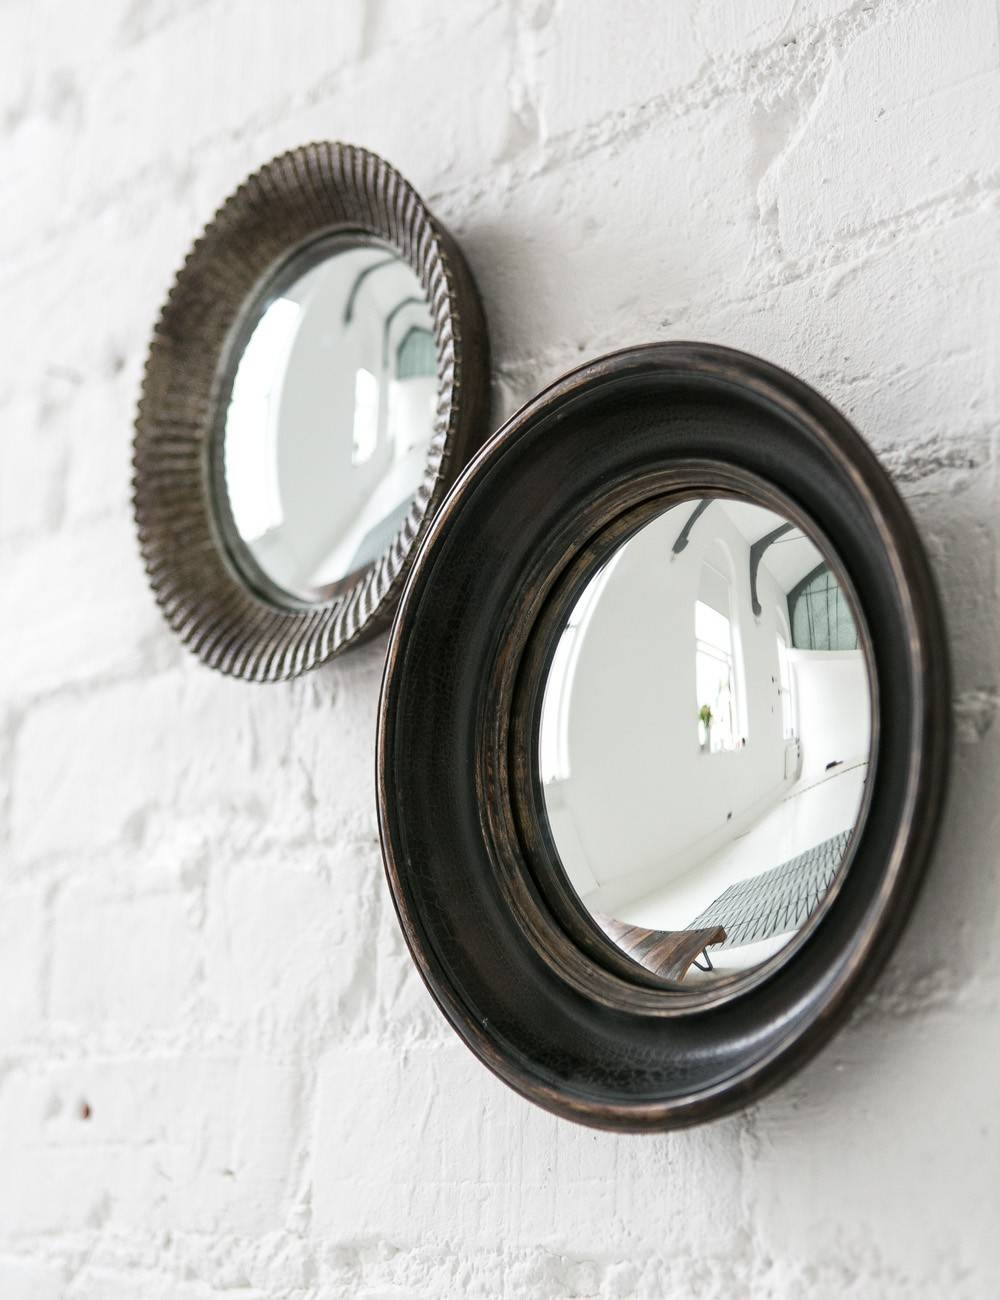 Small Convex Mirror For Creating Striking Wall Decoration | Homesfeed inside Convex Decorative Mirrors (Image 12 of 15)